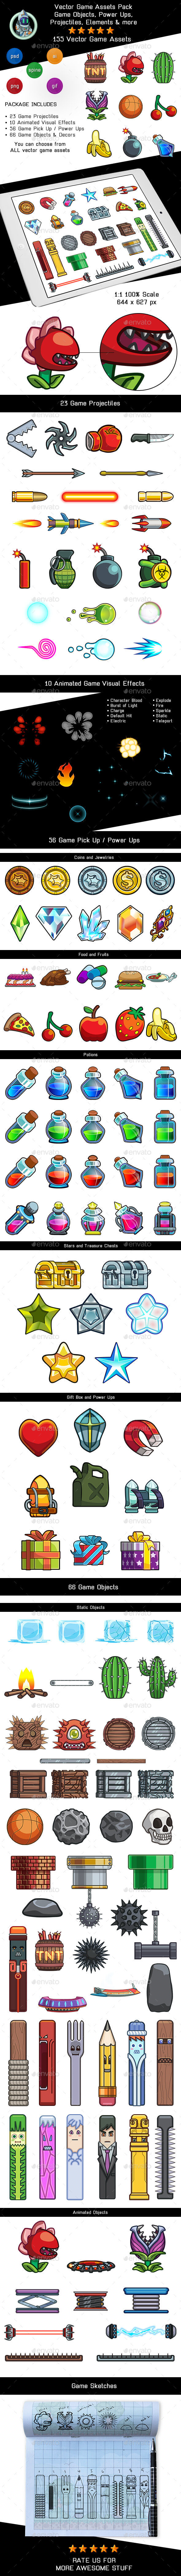 Vector Game Assets Pack - Objects, Power Ups, VFX and Elements - Objects Vectors